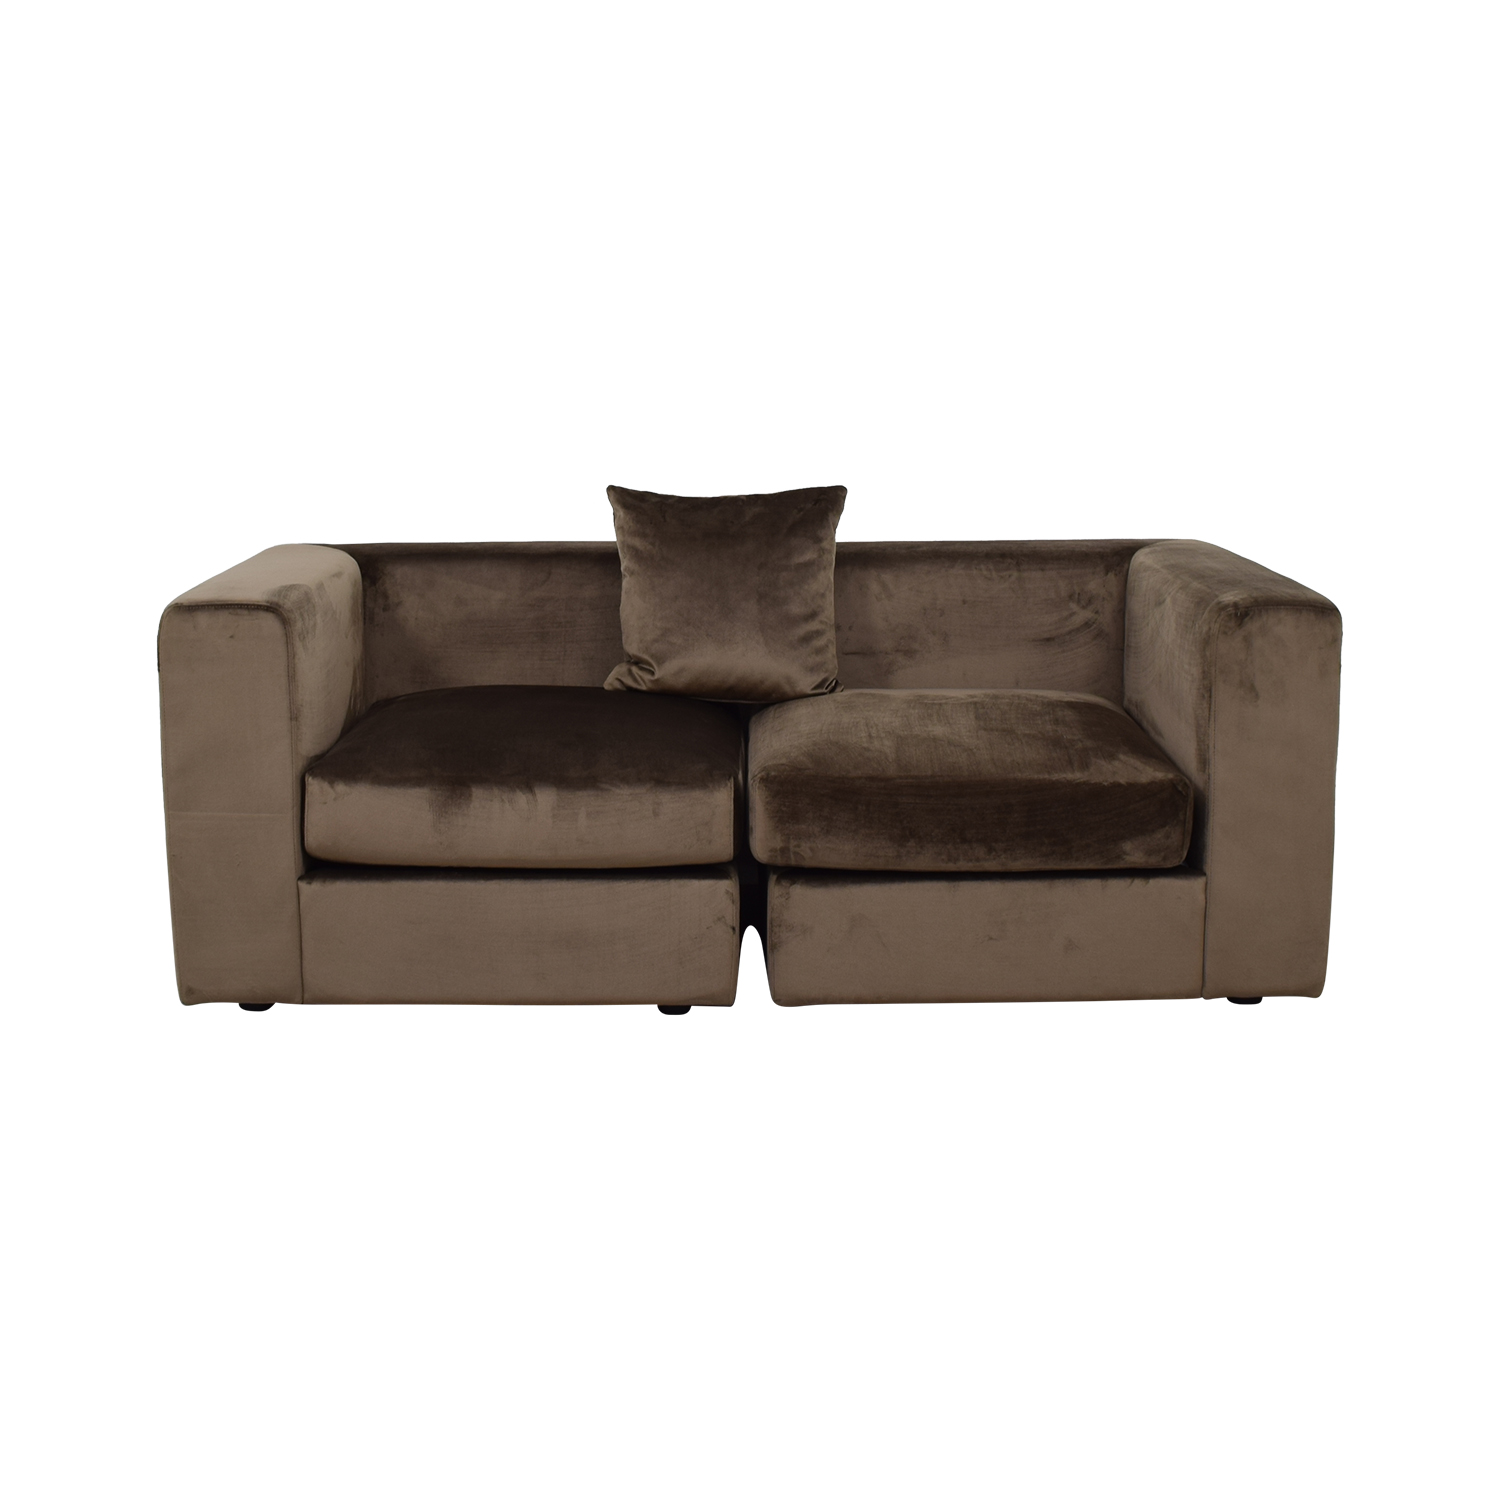 Toby Quartz Mod Velvet Two-Cushion Sofa or Chair Set Interior Define